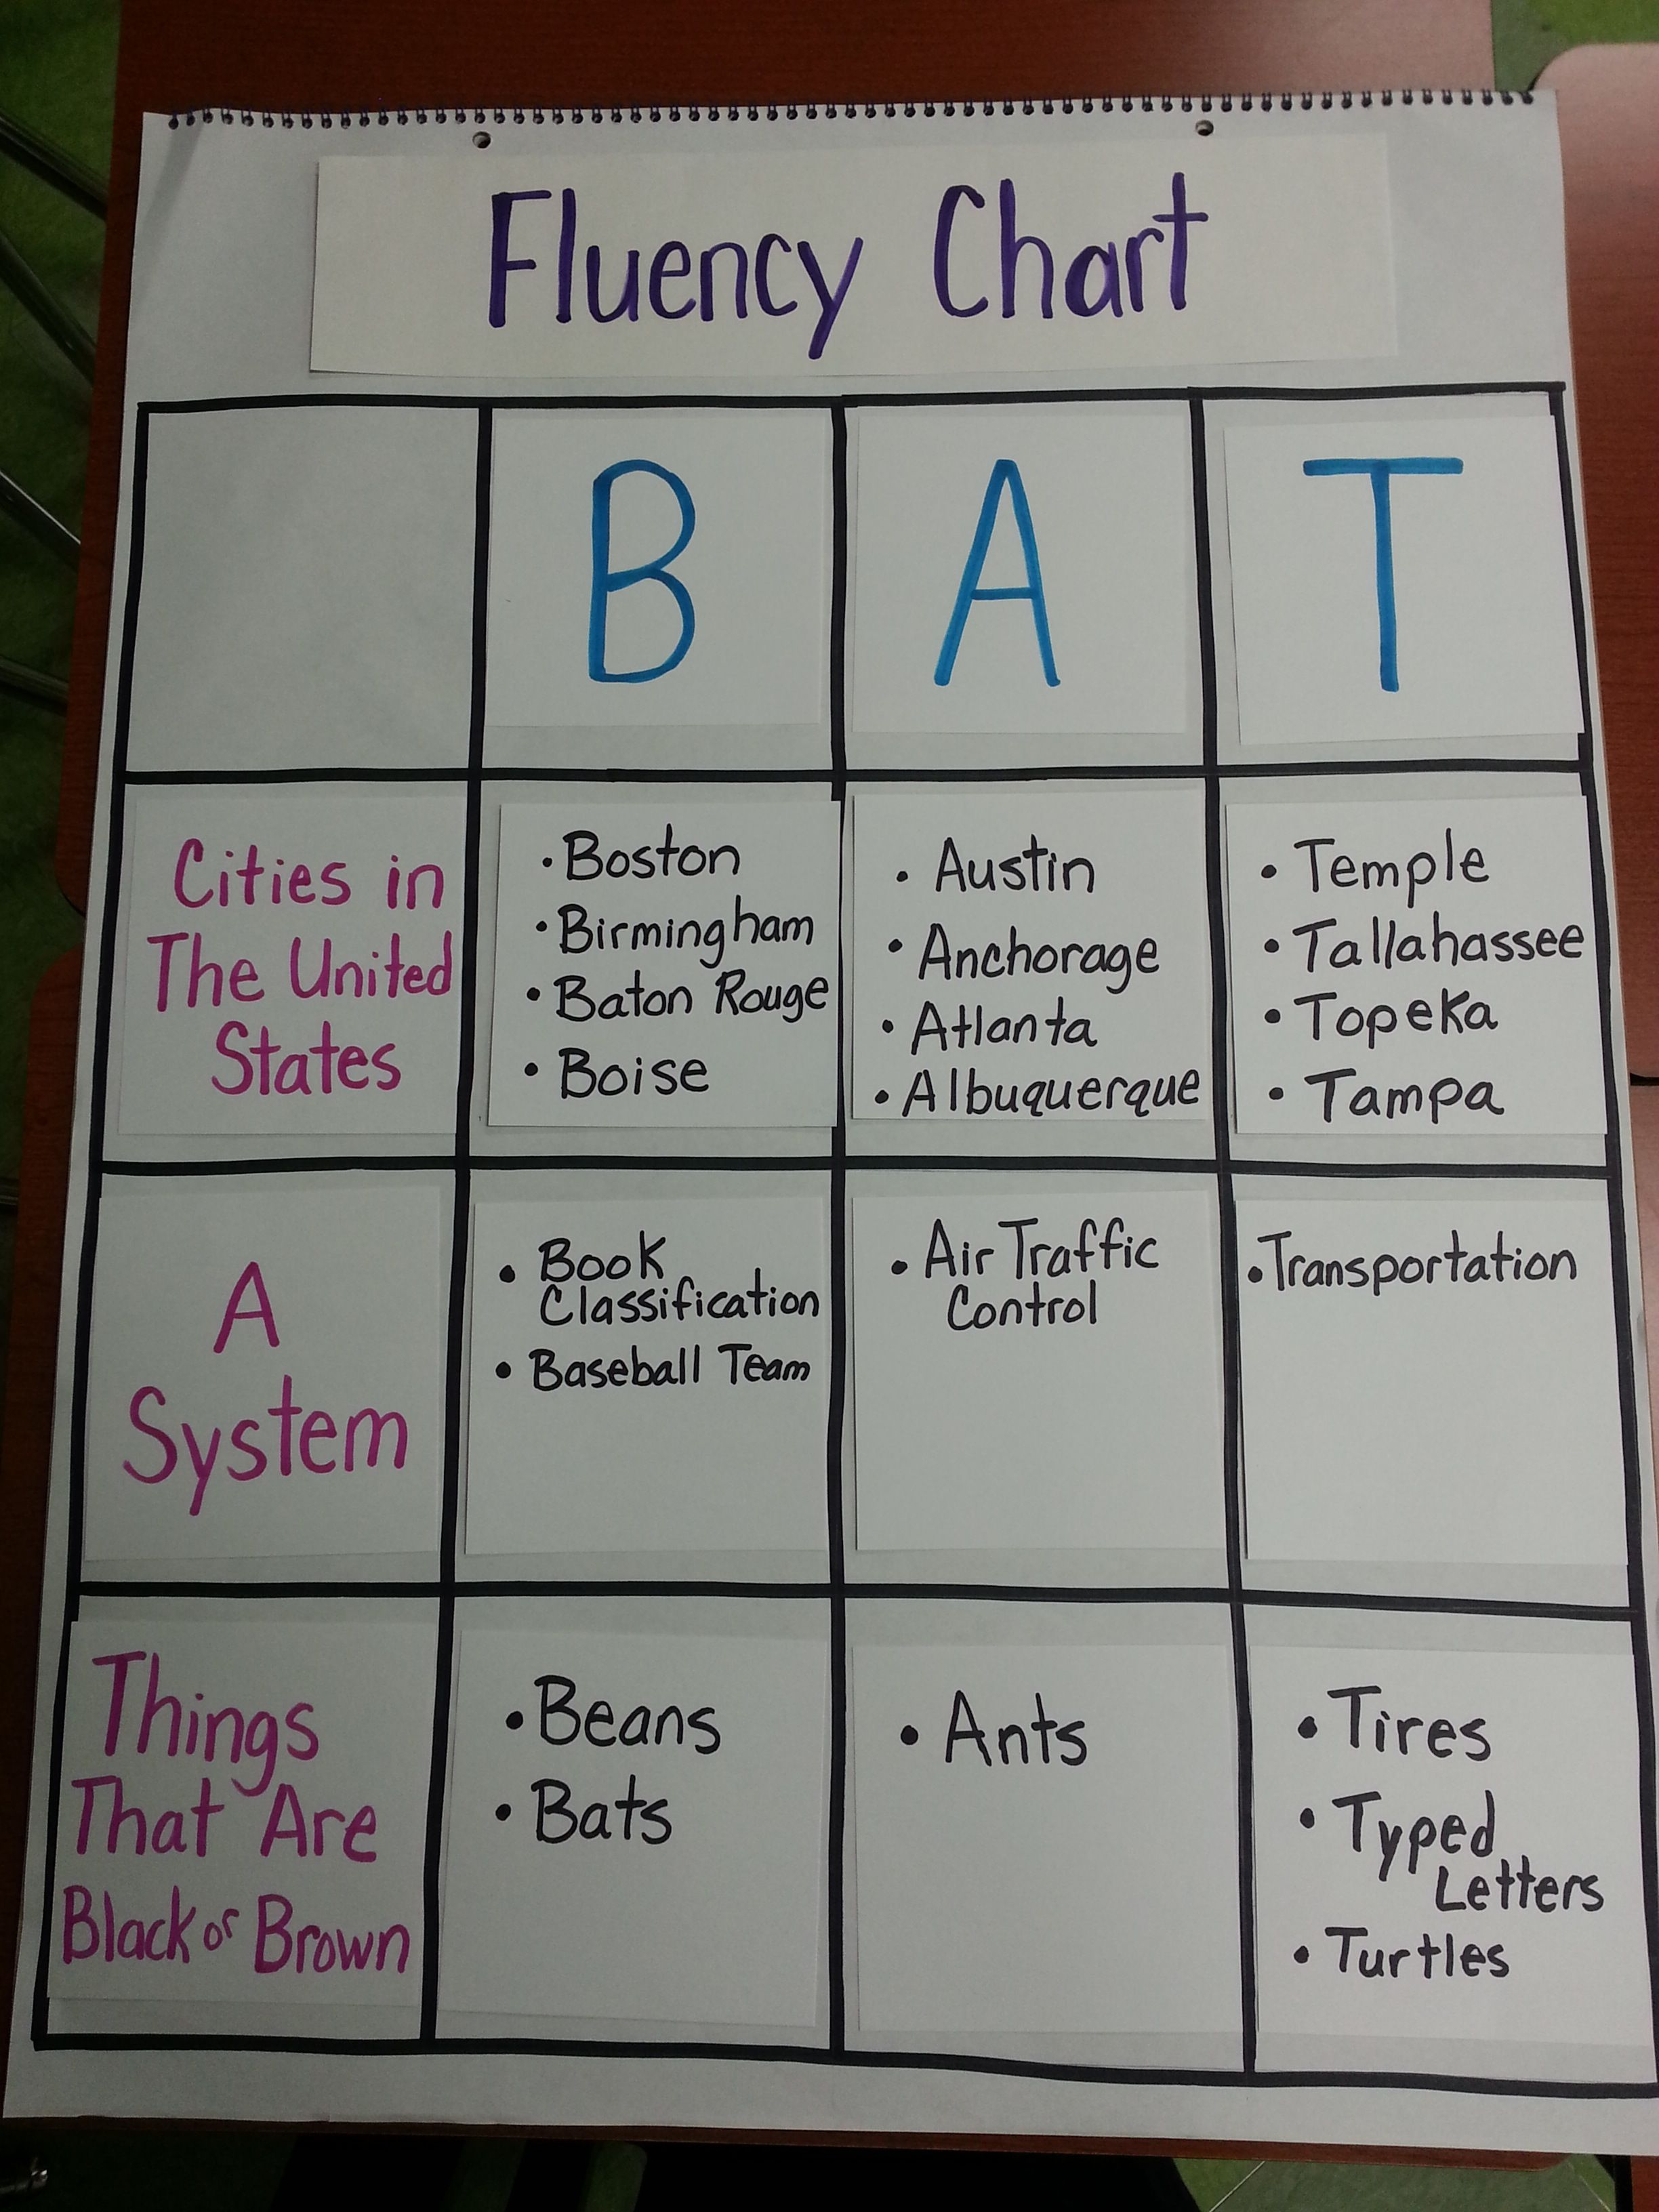 Word Fluency And Creative Thinking With Bats